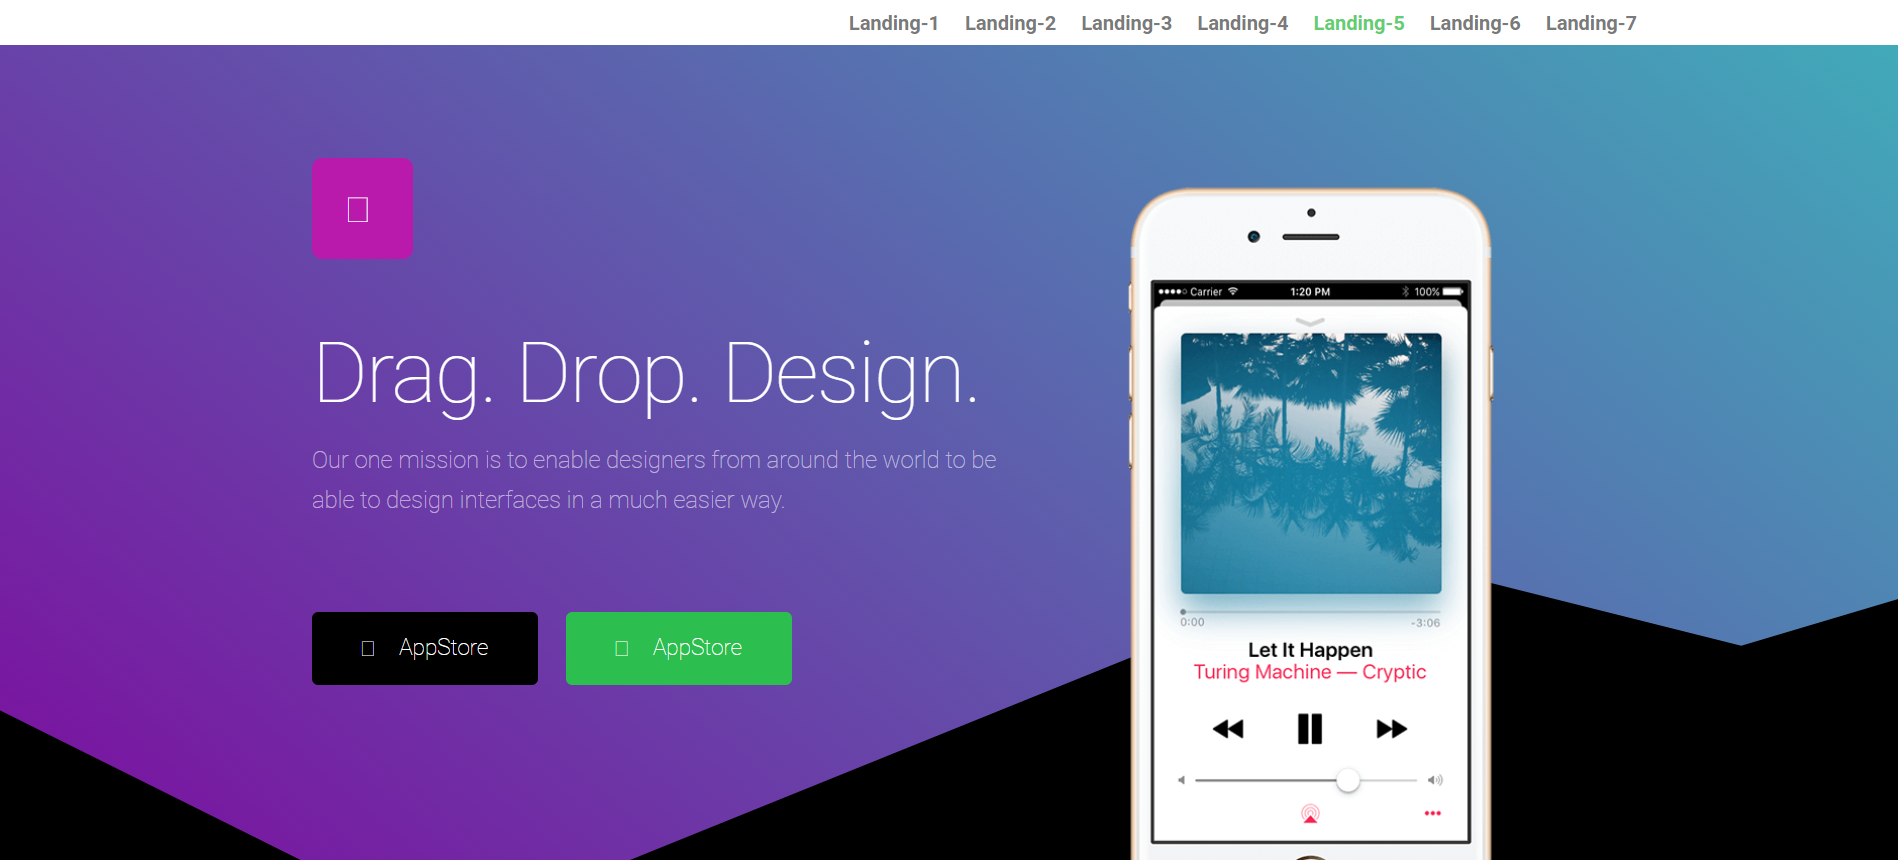 Install a similar wordpress theme landing page on your website, FiverrBox